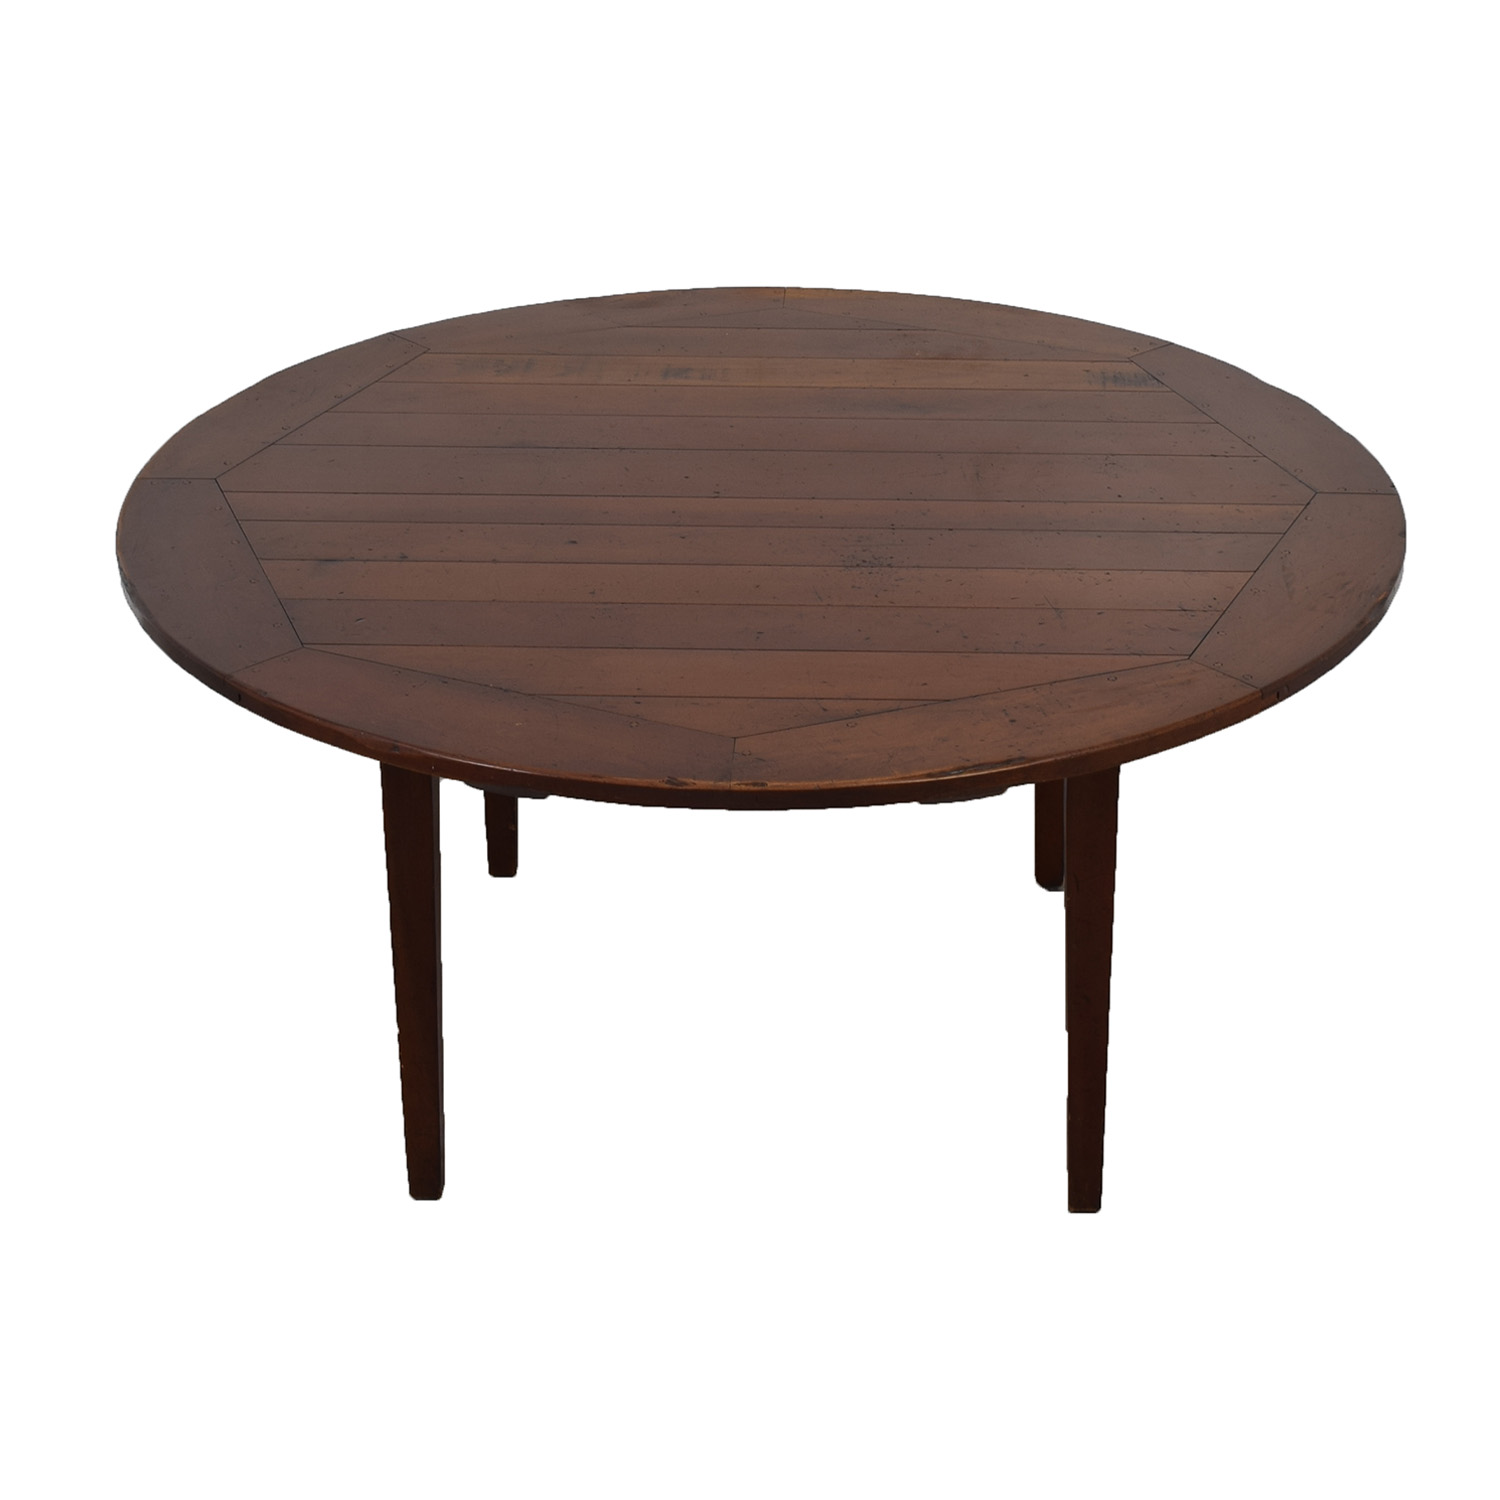 Rustic Round Wood Dining Table dimensions